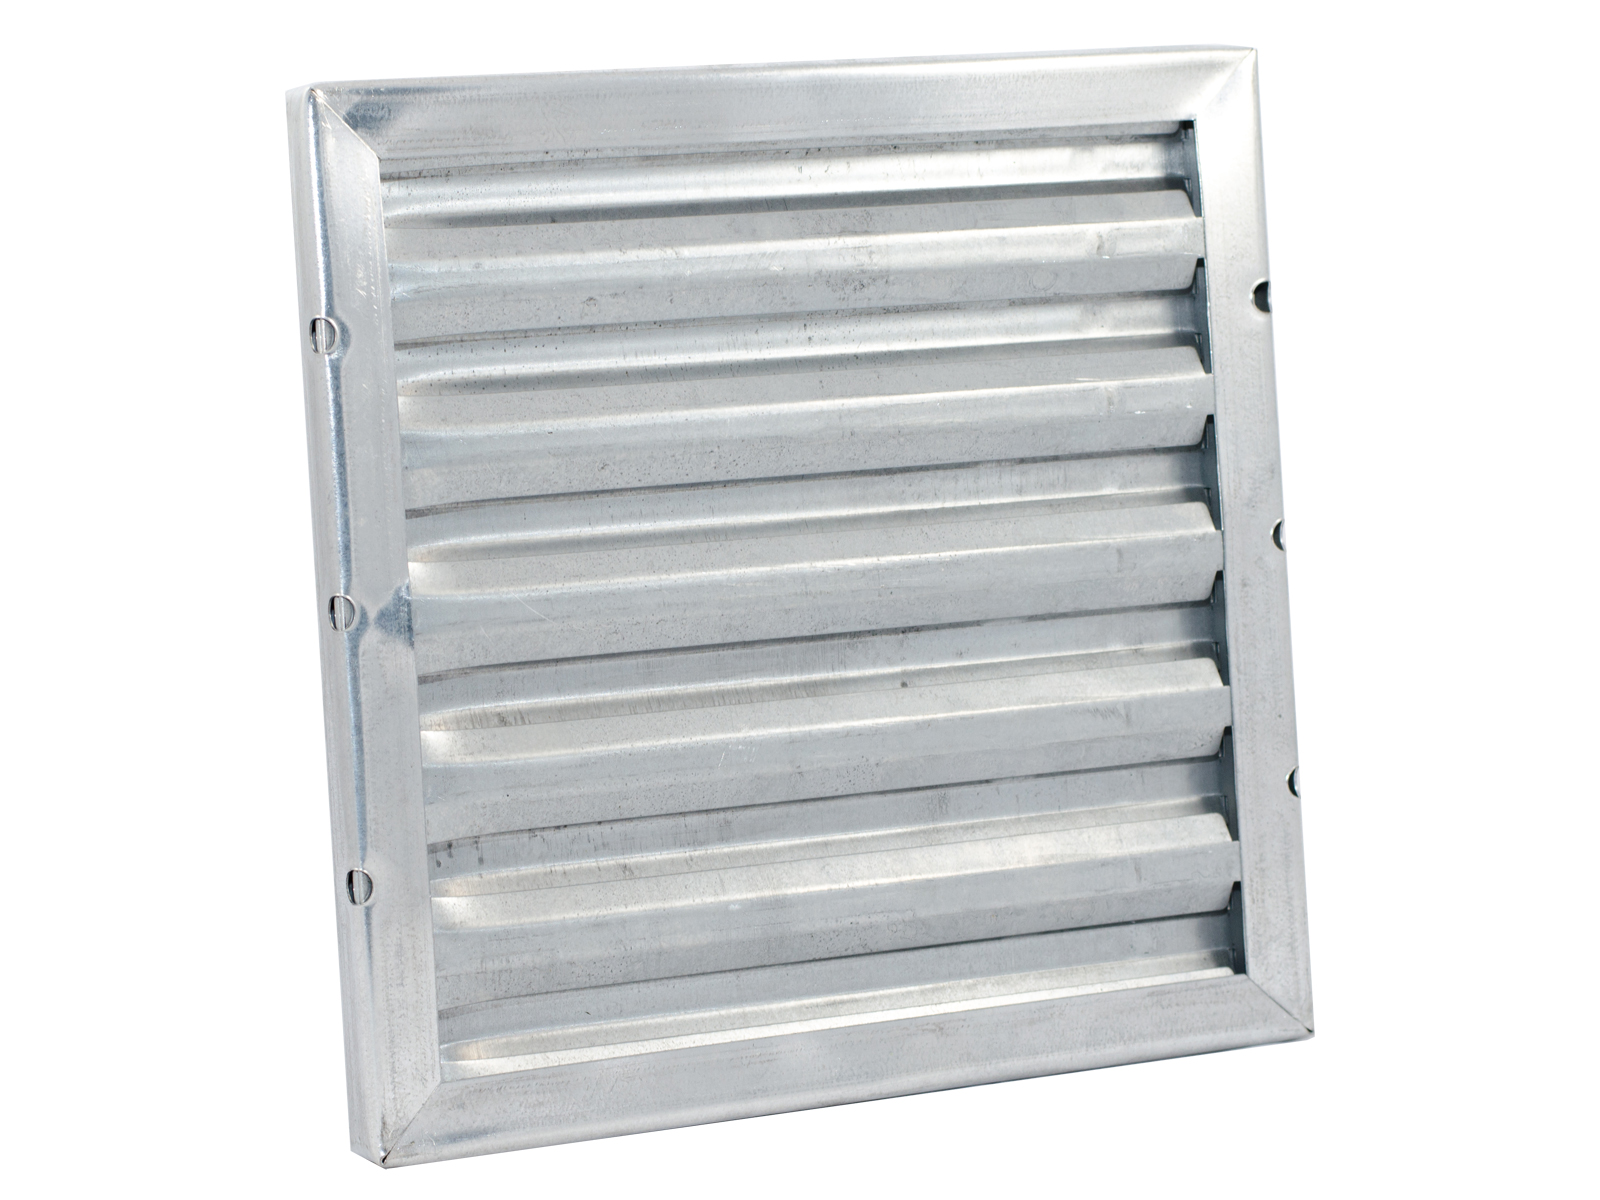 grease filters exhaust hood guide